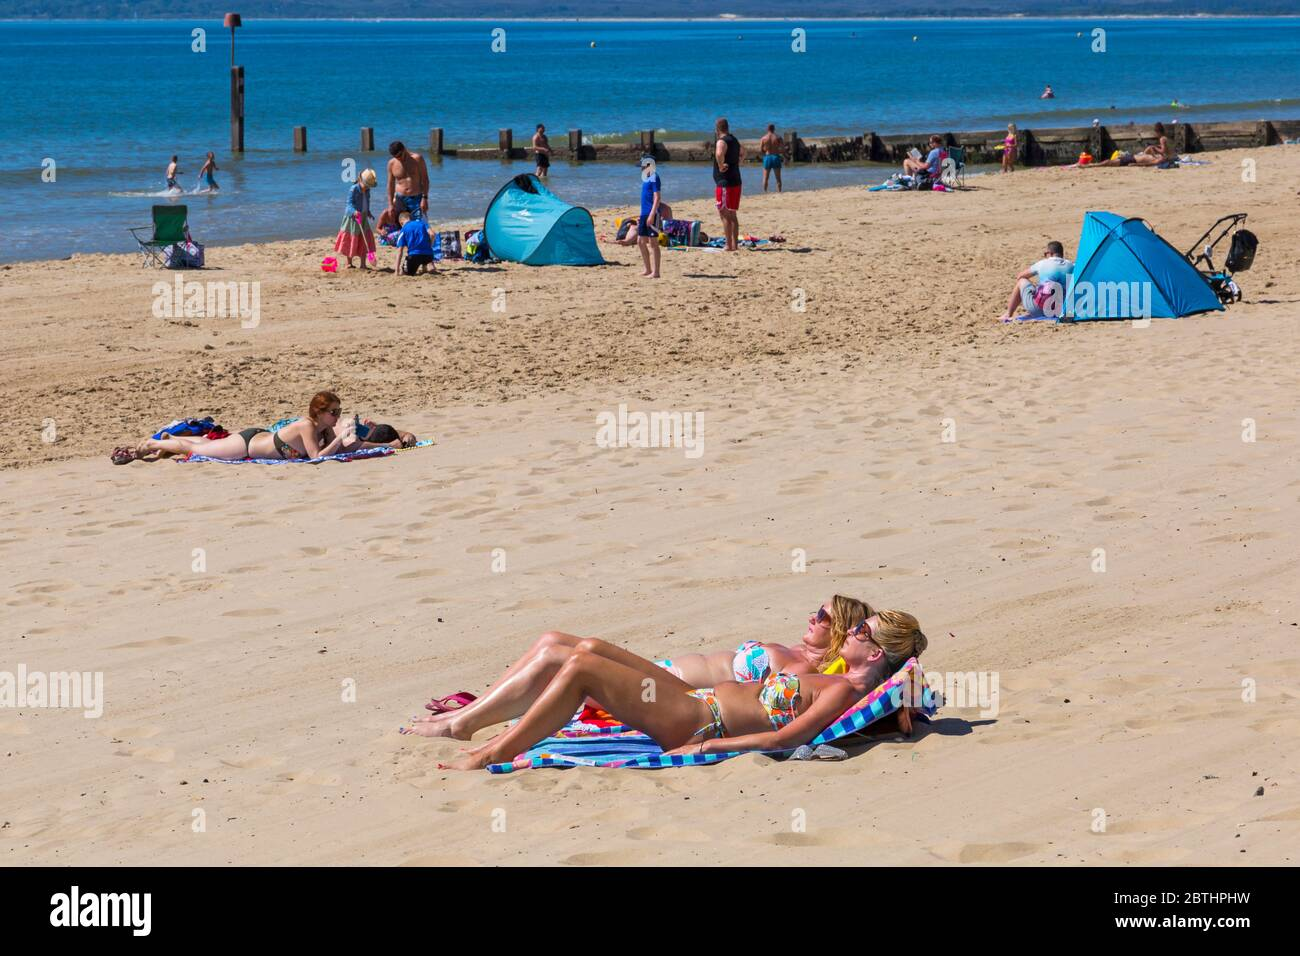 Bournemouth, Dorset UK. 26th May 2020. UK weather: another hot sunny day at Bournemouth beaches with clear blue skies and unbroken sunshine, as the glorious weather continues and temperatures rise. Sunseekers head to the seaside to enjoy the sunshine. Credit: Carolyn Jenkins/Alamy Live News Stock Photo